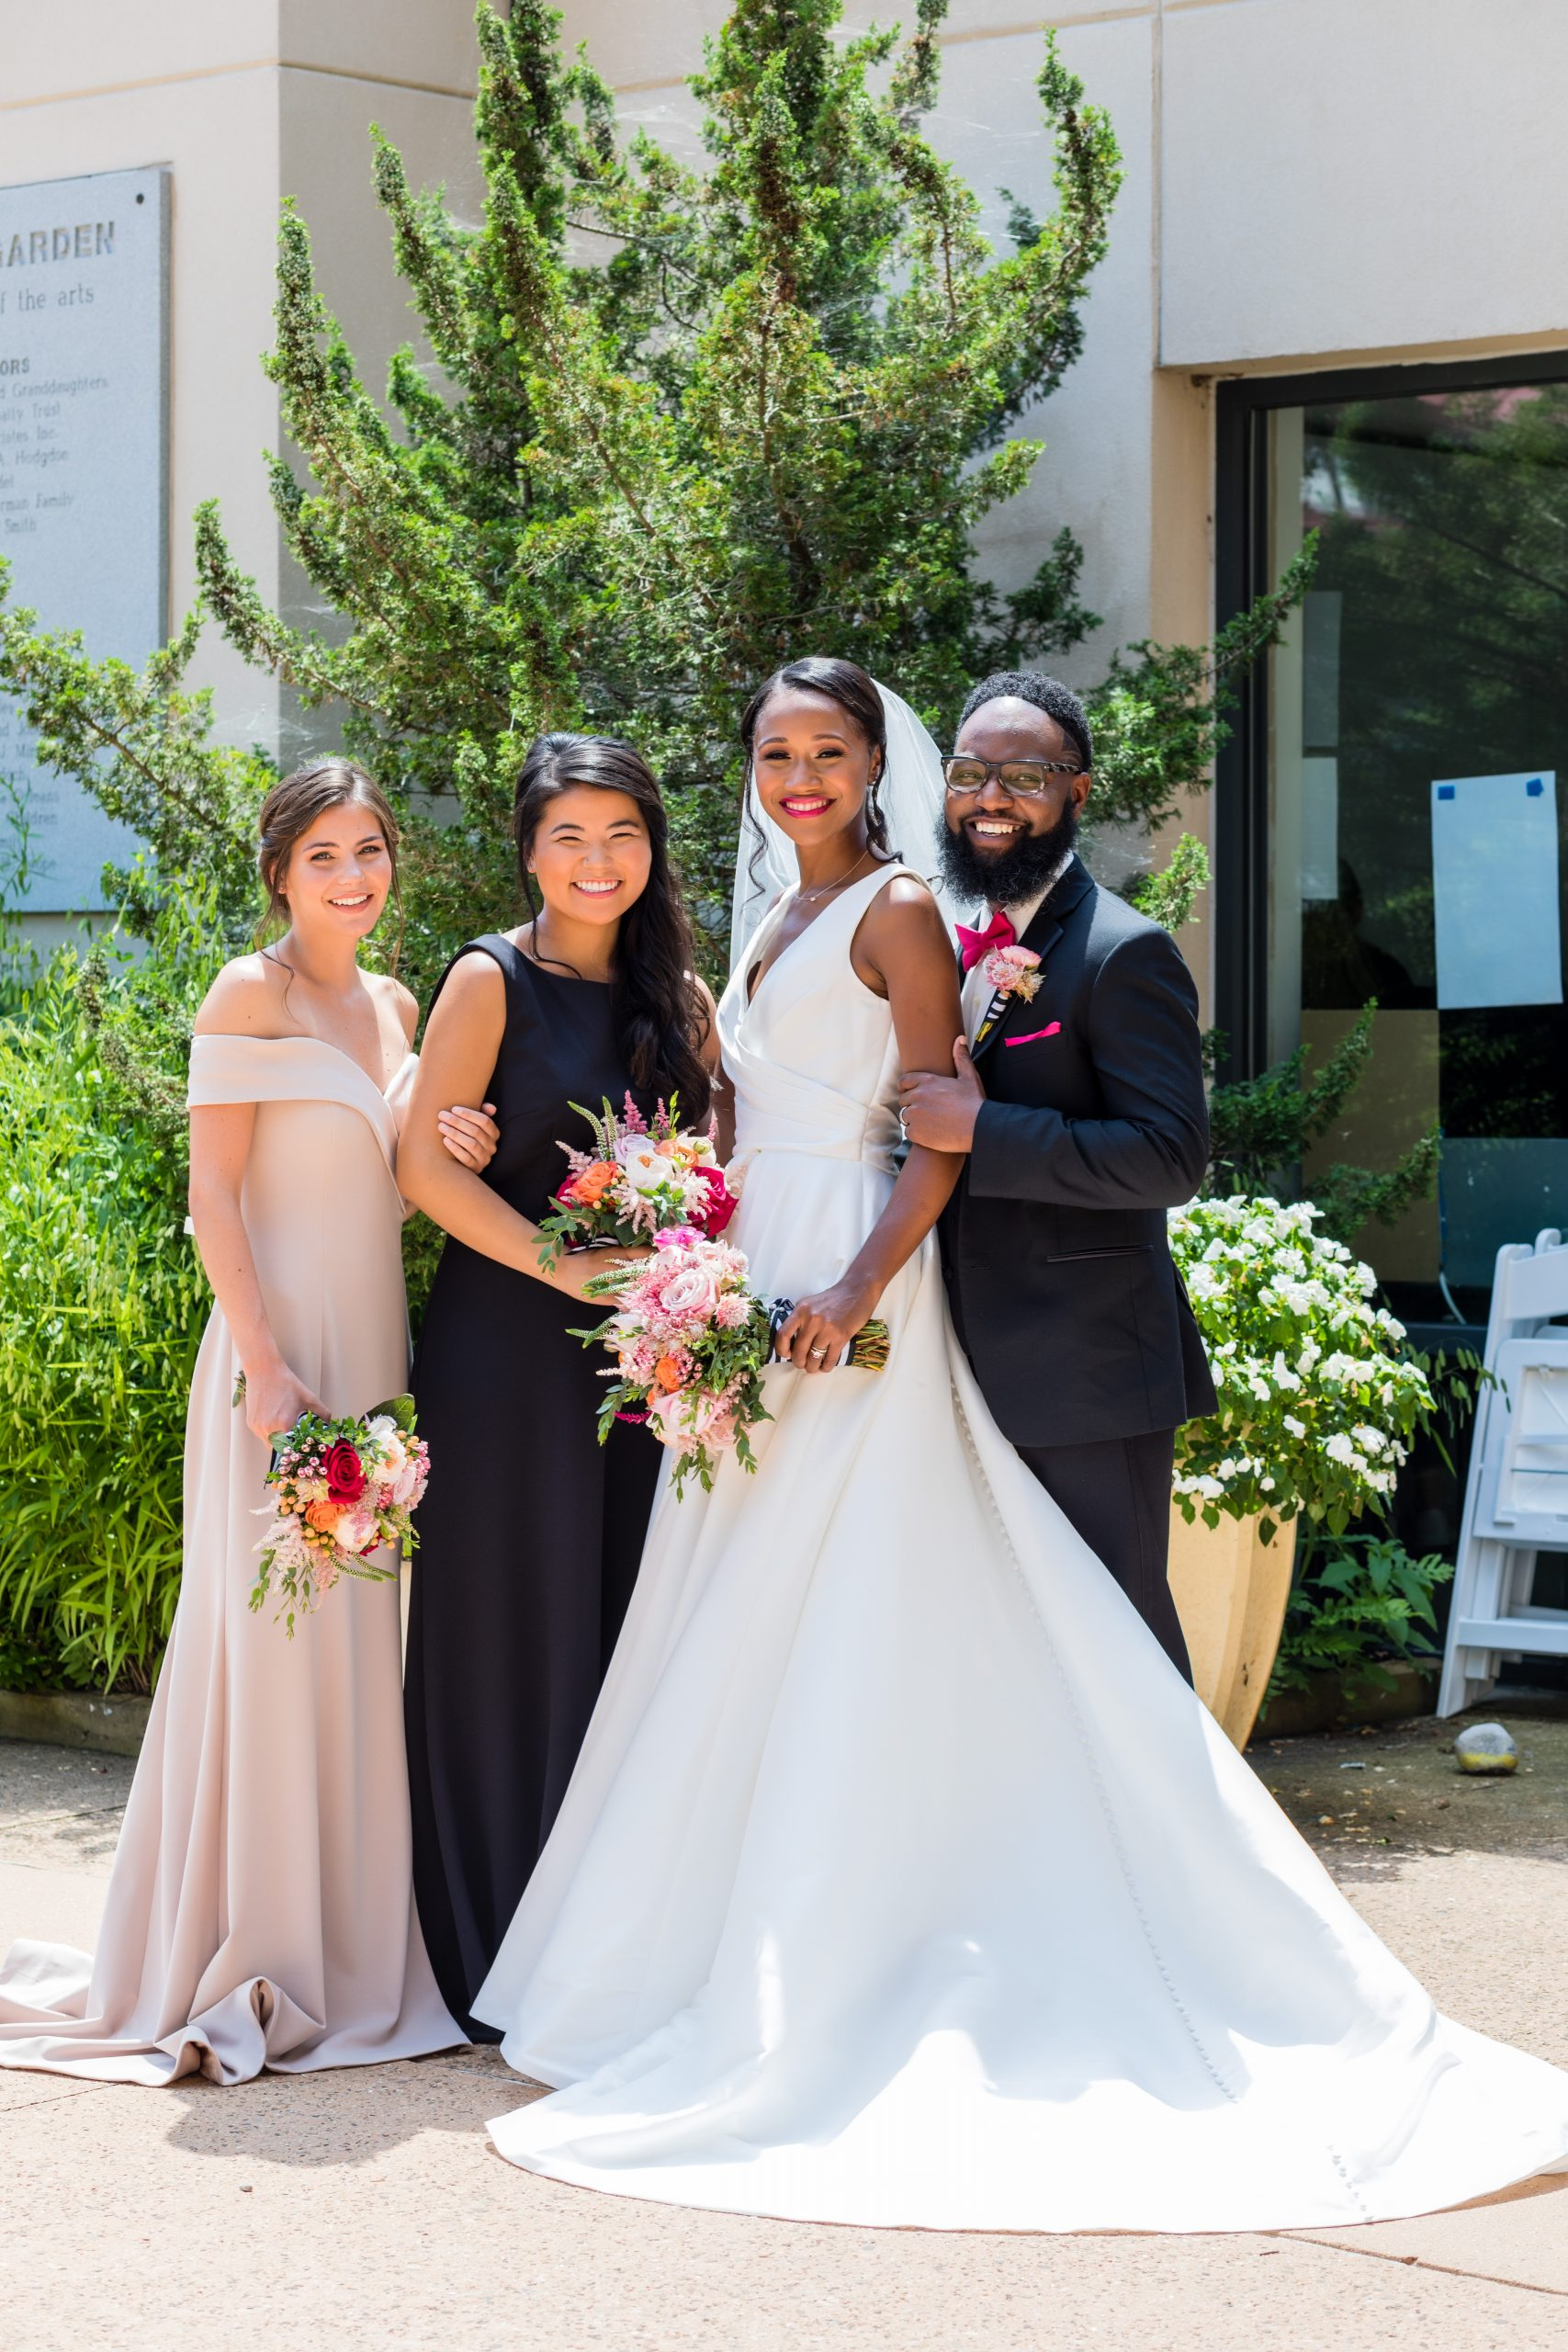 the versatile bridesmaids dresses, natural light, garden and smiles are all they need at the Michener Museum styled urban contemporary shoot for Ashley Gerrity Photography this past Summer. Featured on Dream Weddings.